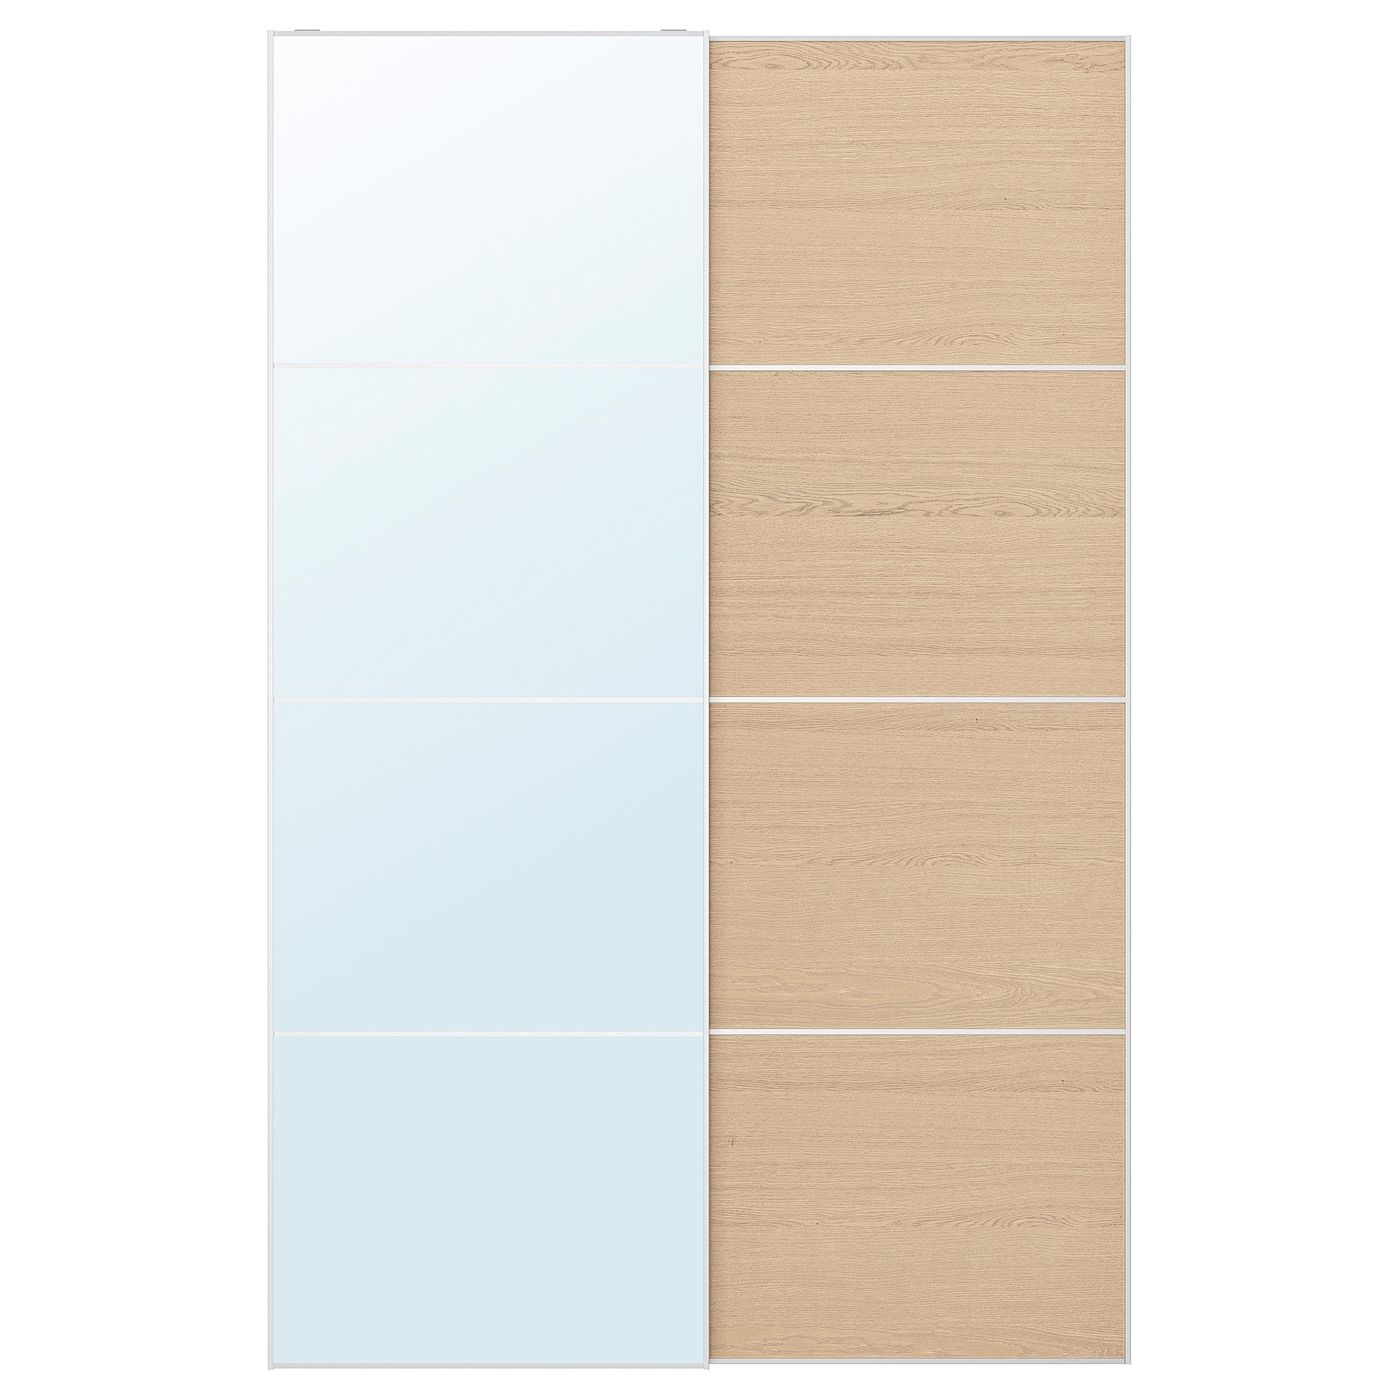 Auli Mehamn Pair Of Sliding Doors Mirror Glass White Stained Oak Effect Ikea In 2020 Glass Mirror Sliding Doors White Stain